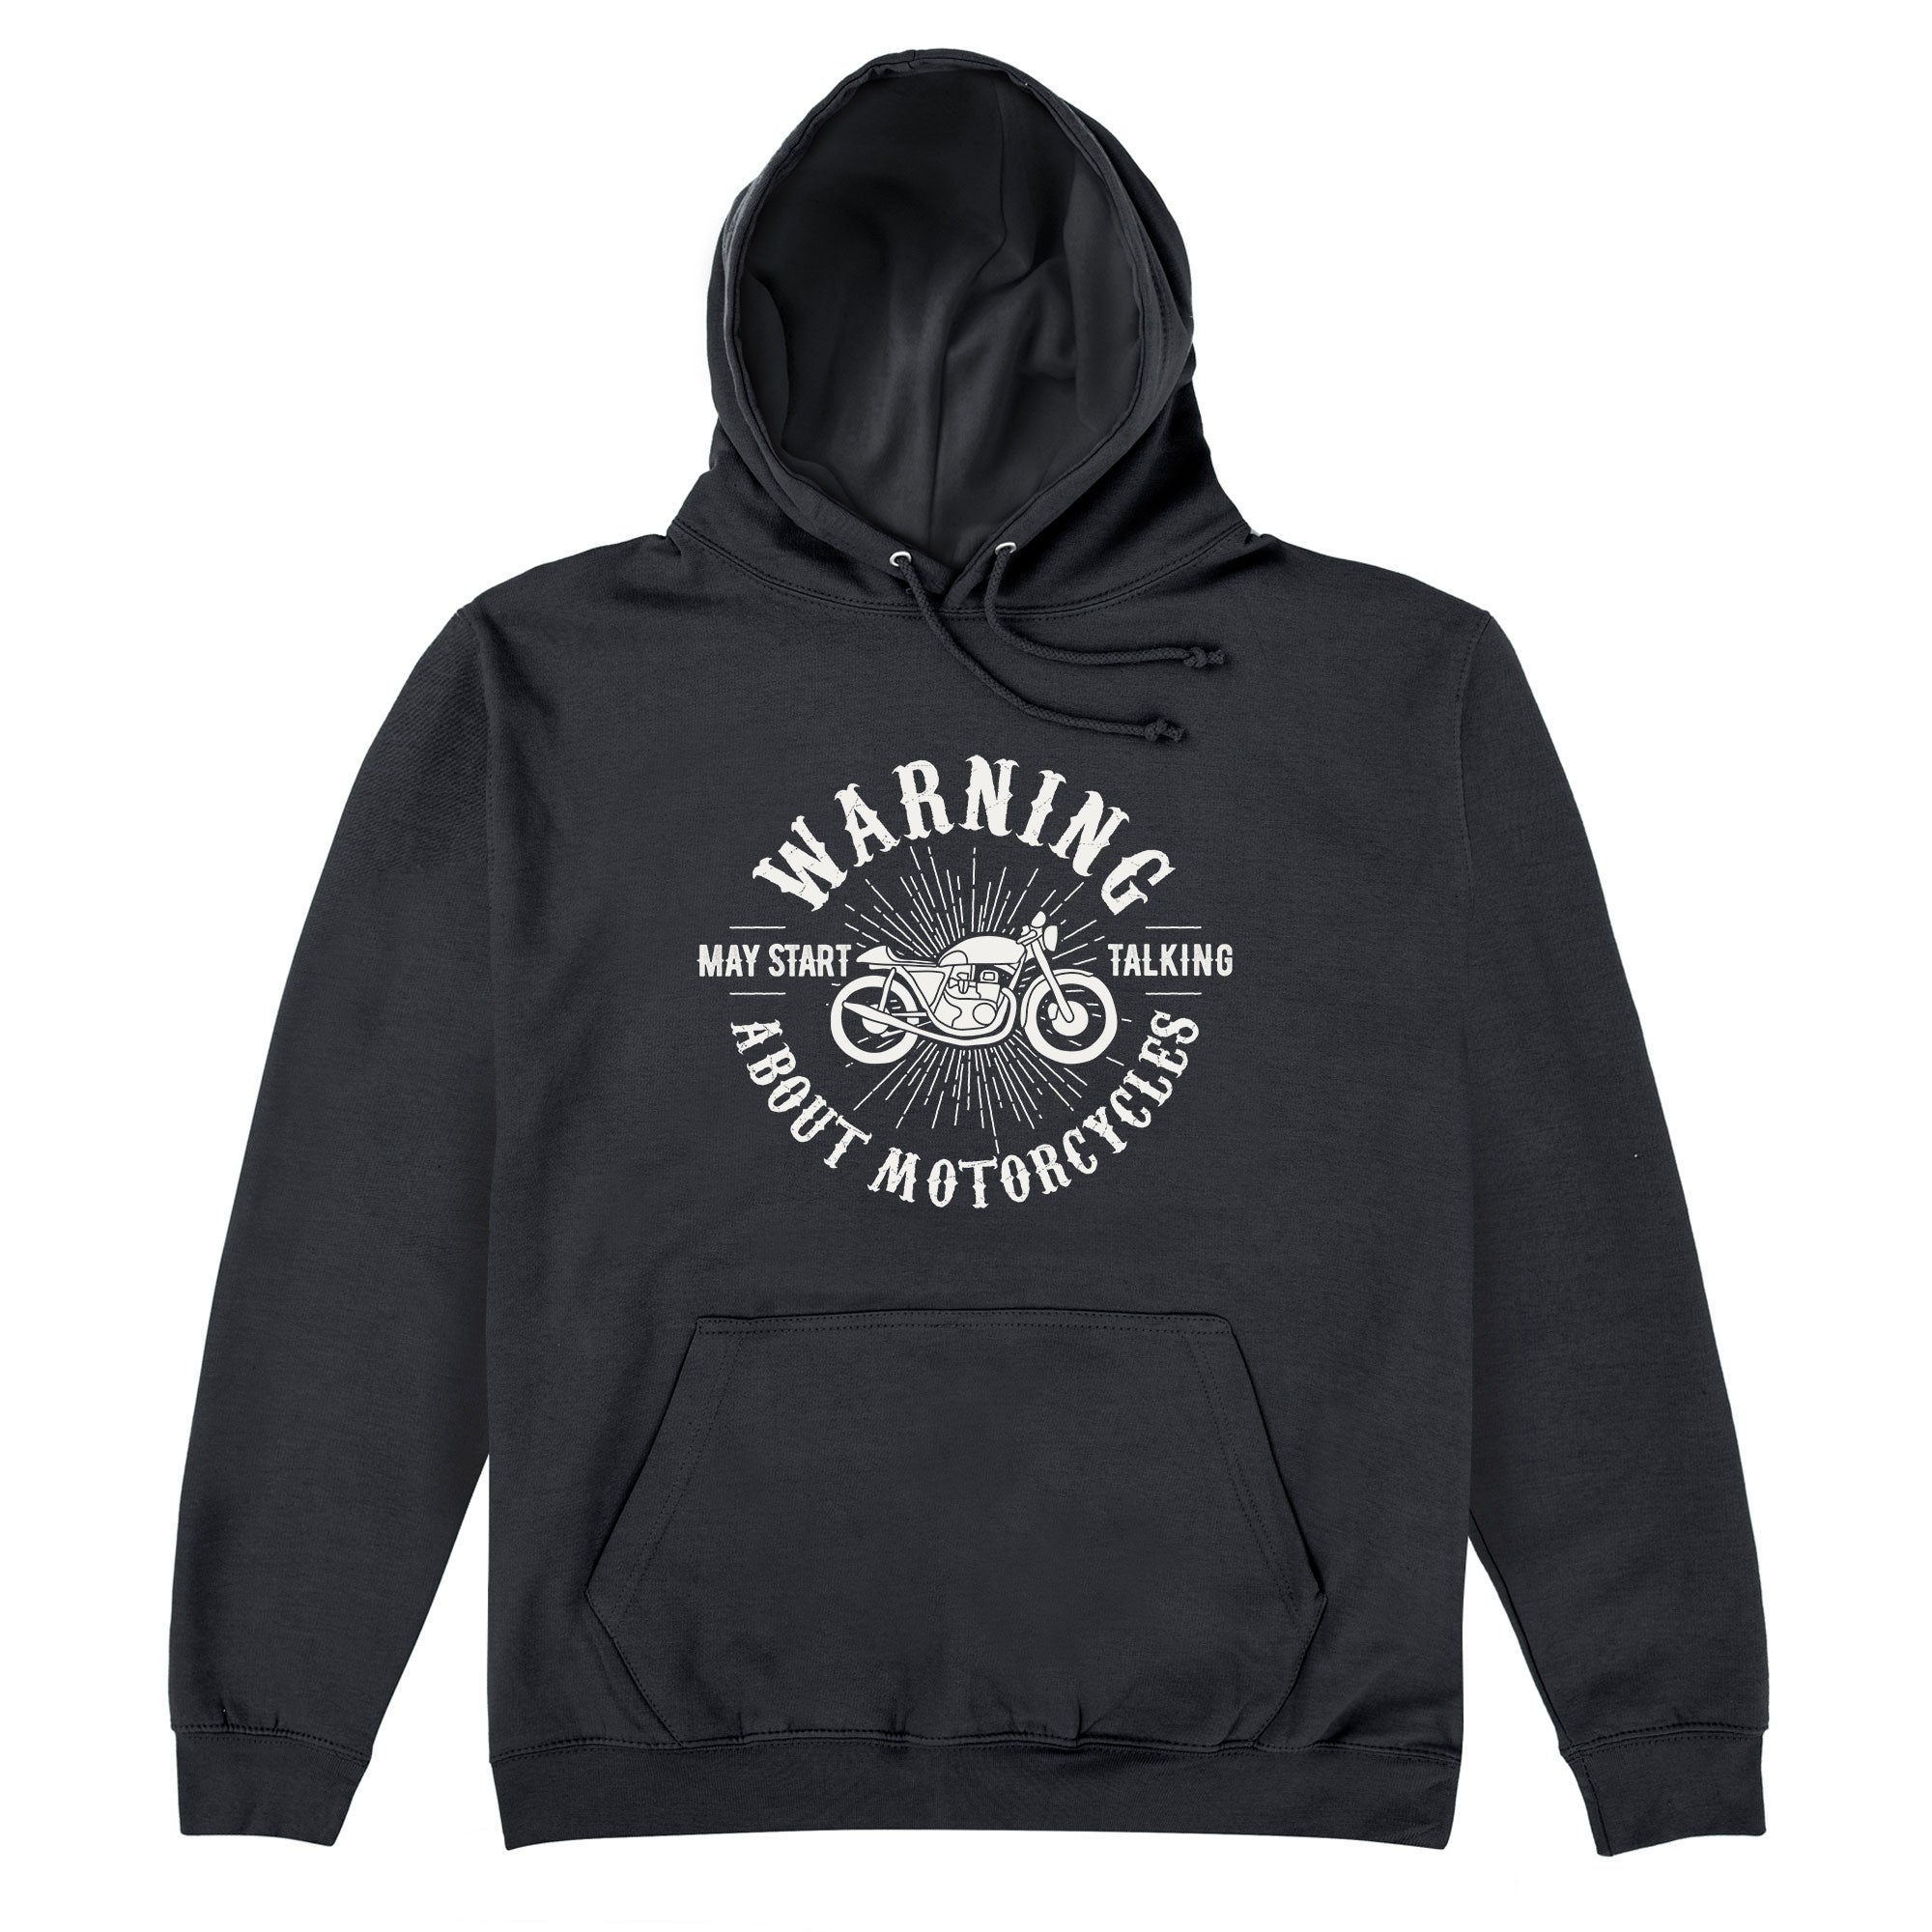 CHEAP May Start Talking About Motorcycles Hoodie 25735409481 – Clothing Accessories